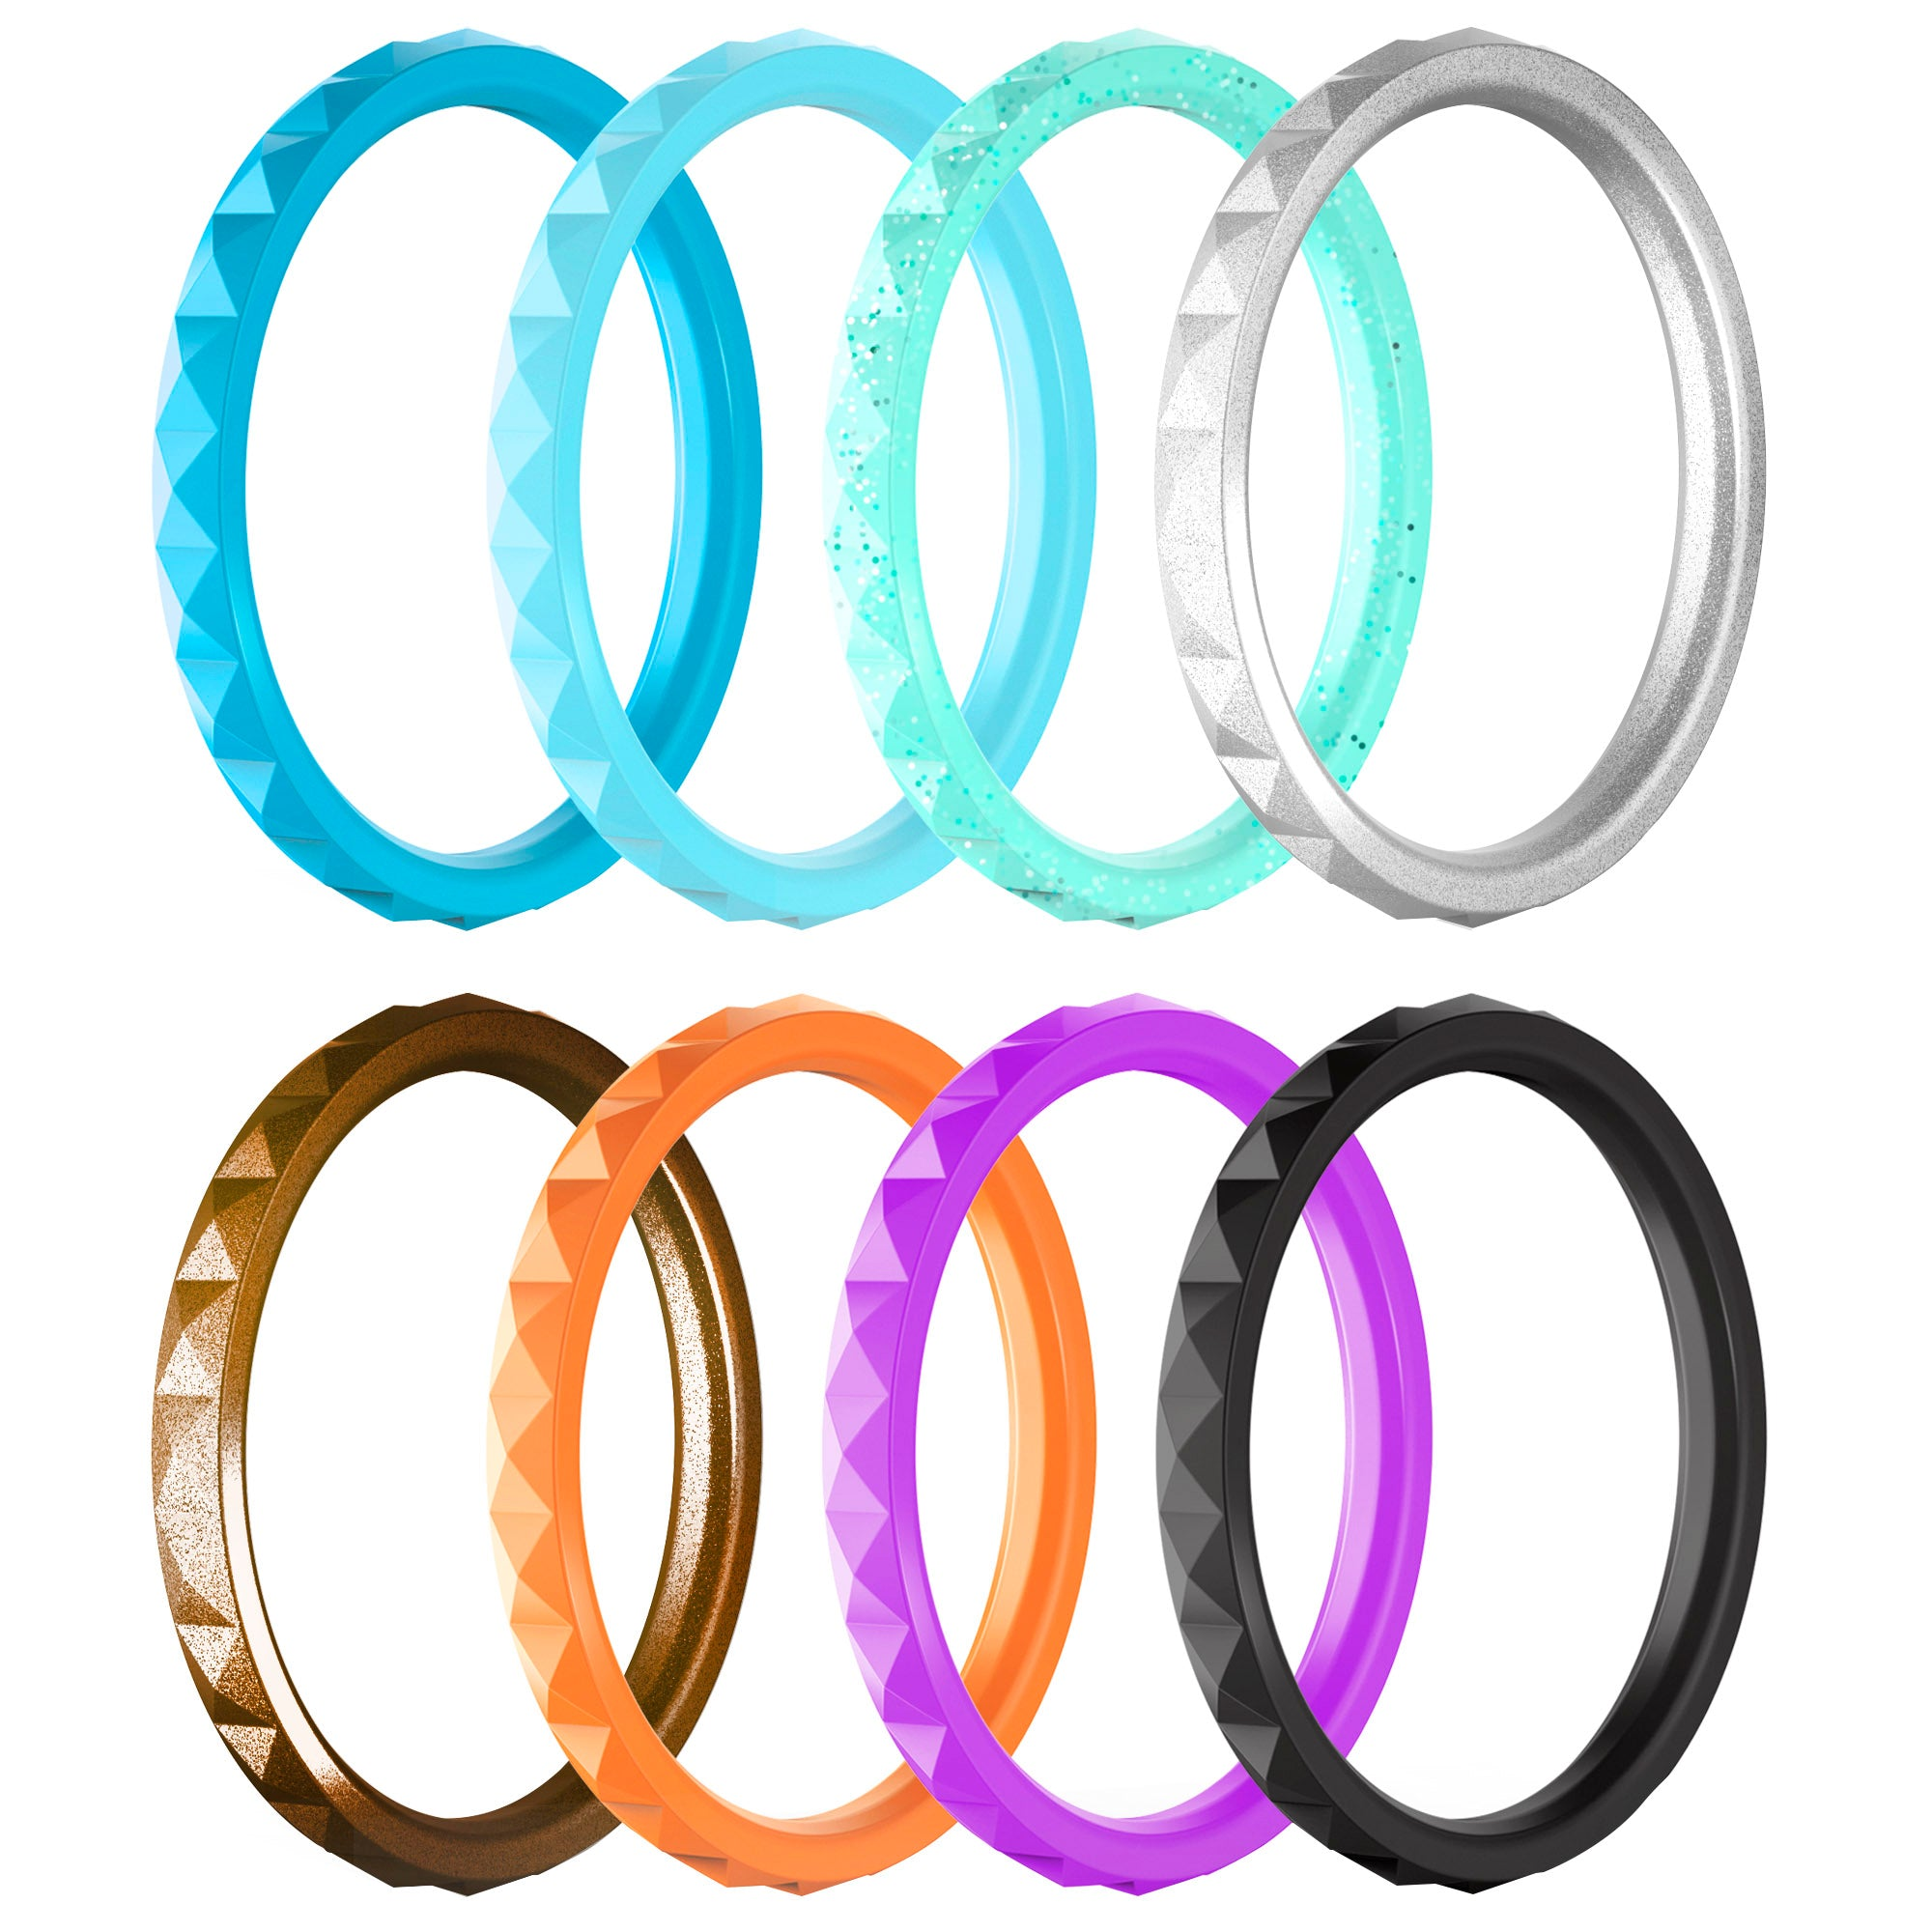 Pyramid Stackables 8 Rings Pack - Viva